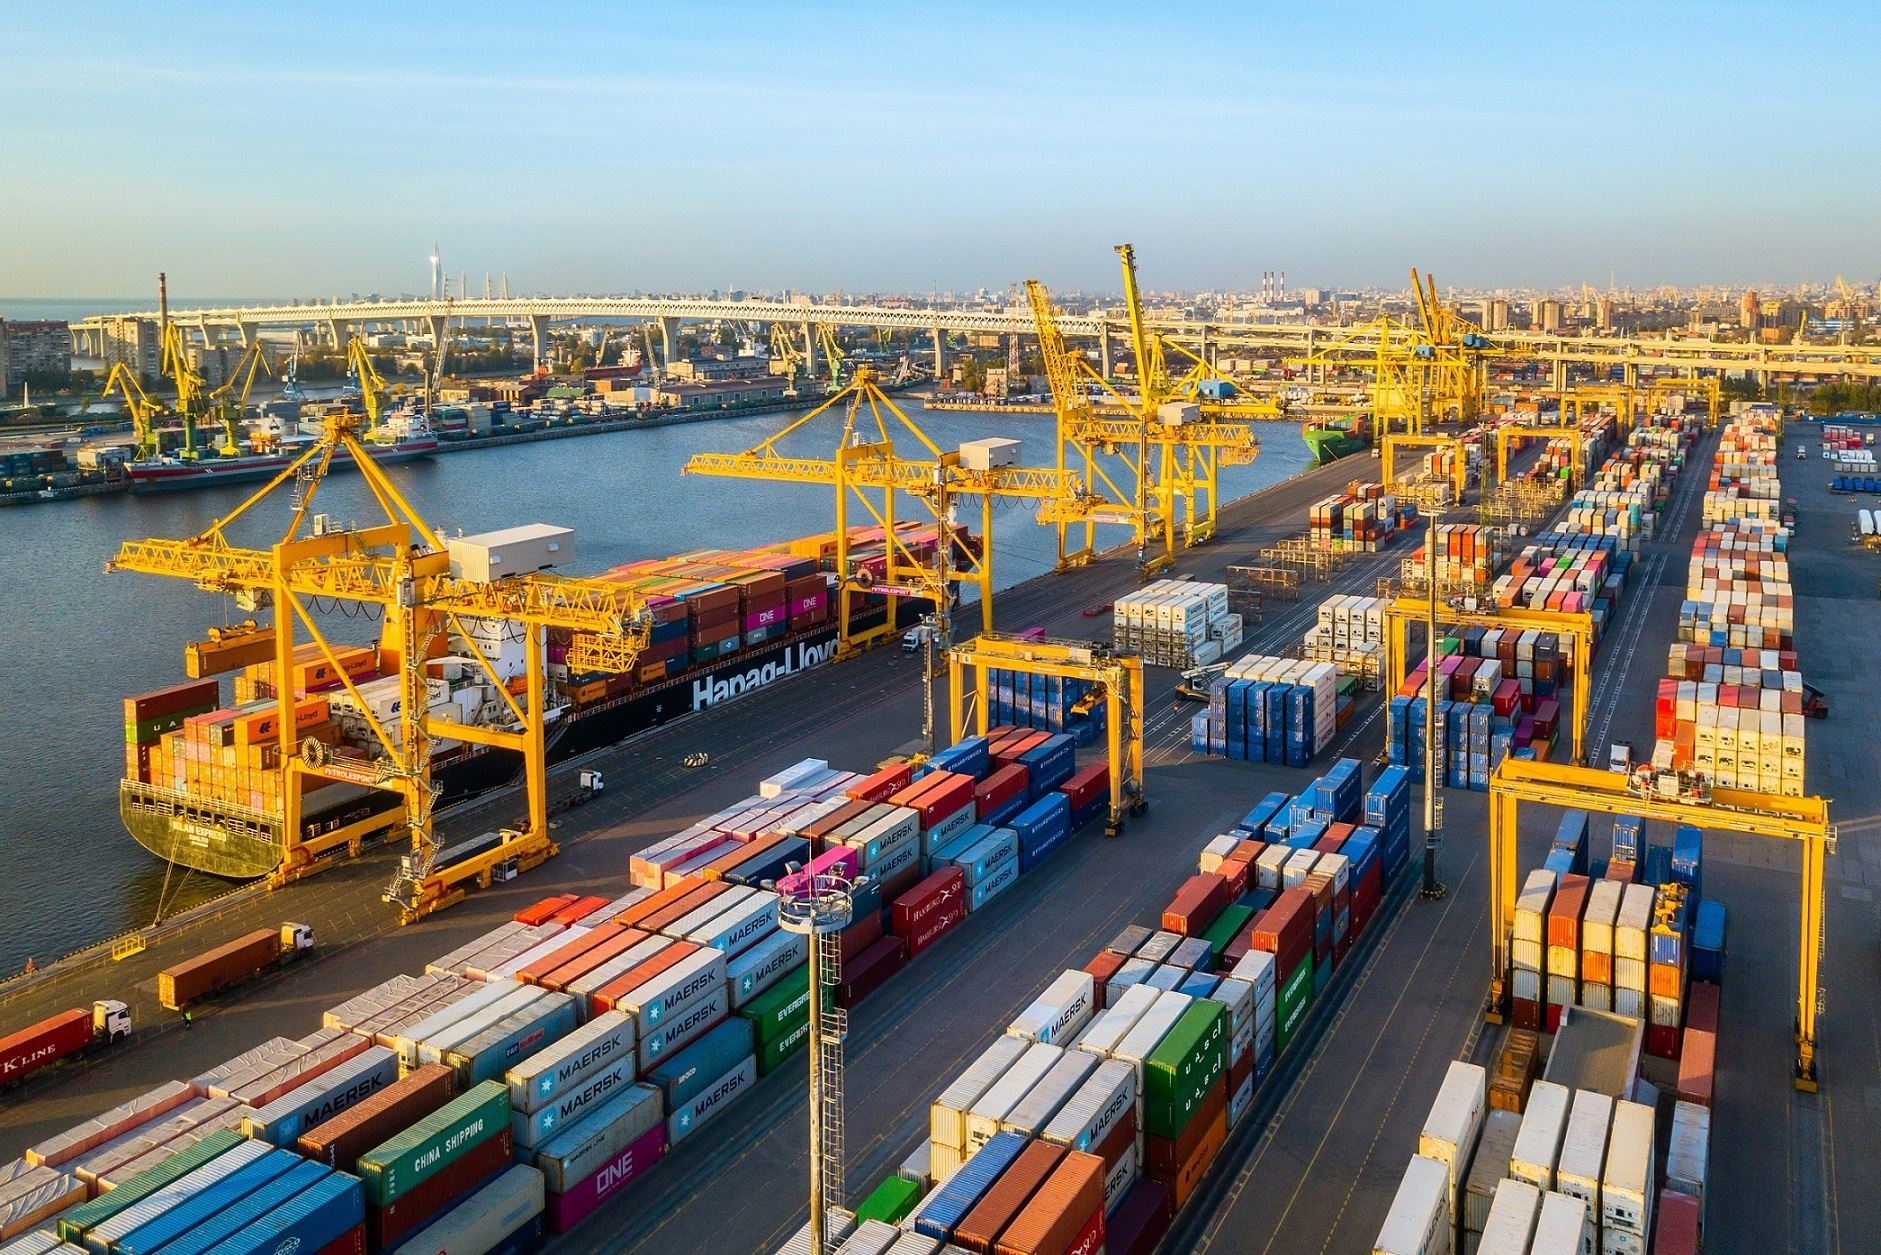 The new equipment will increase the speed of accounting for cargo when handling vessels and vehicles